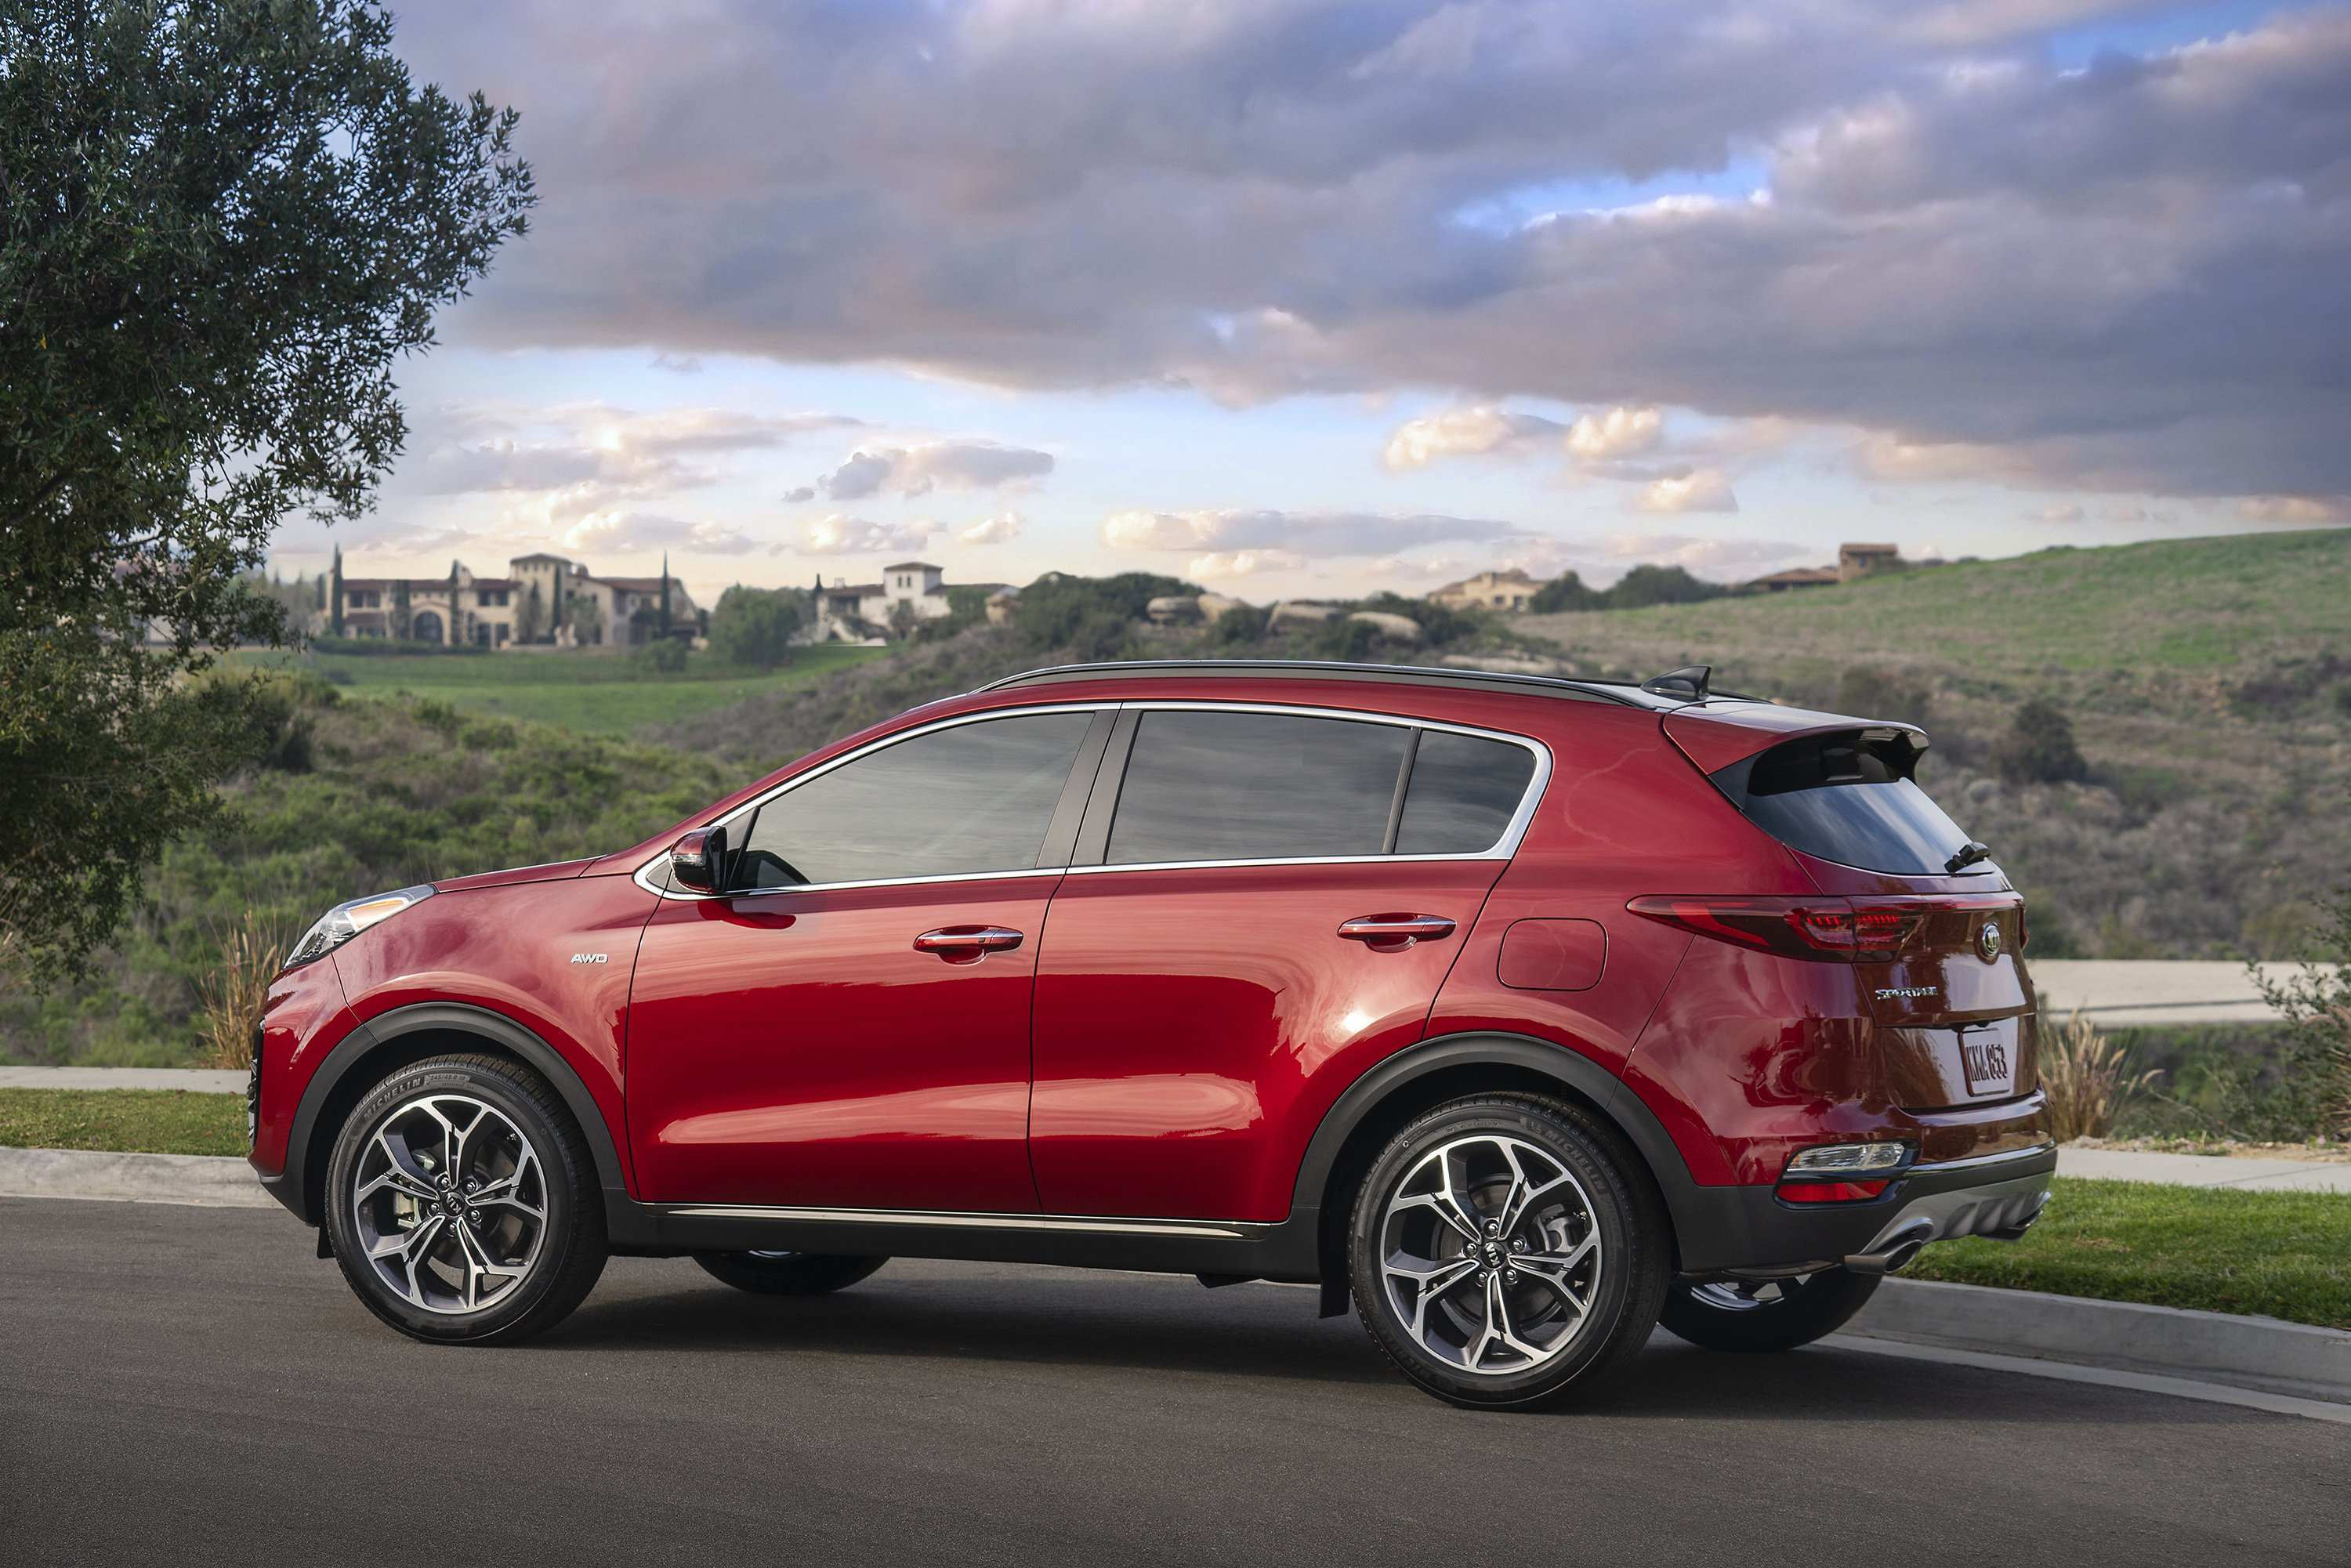 91 The 2020 Kia Sportage Price And Release Date